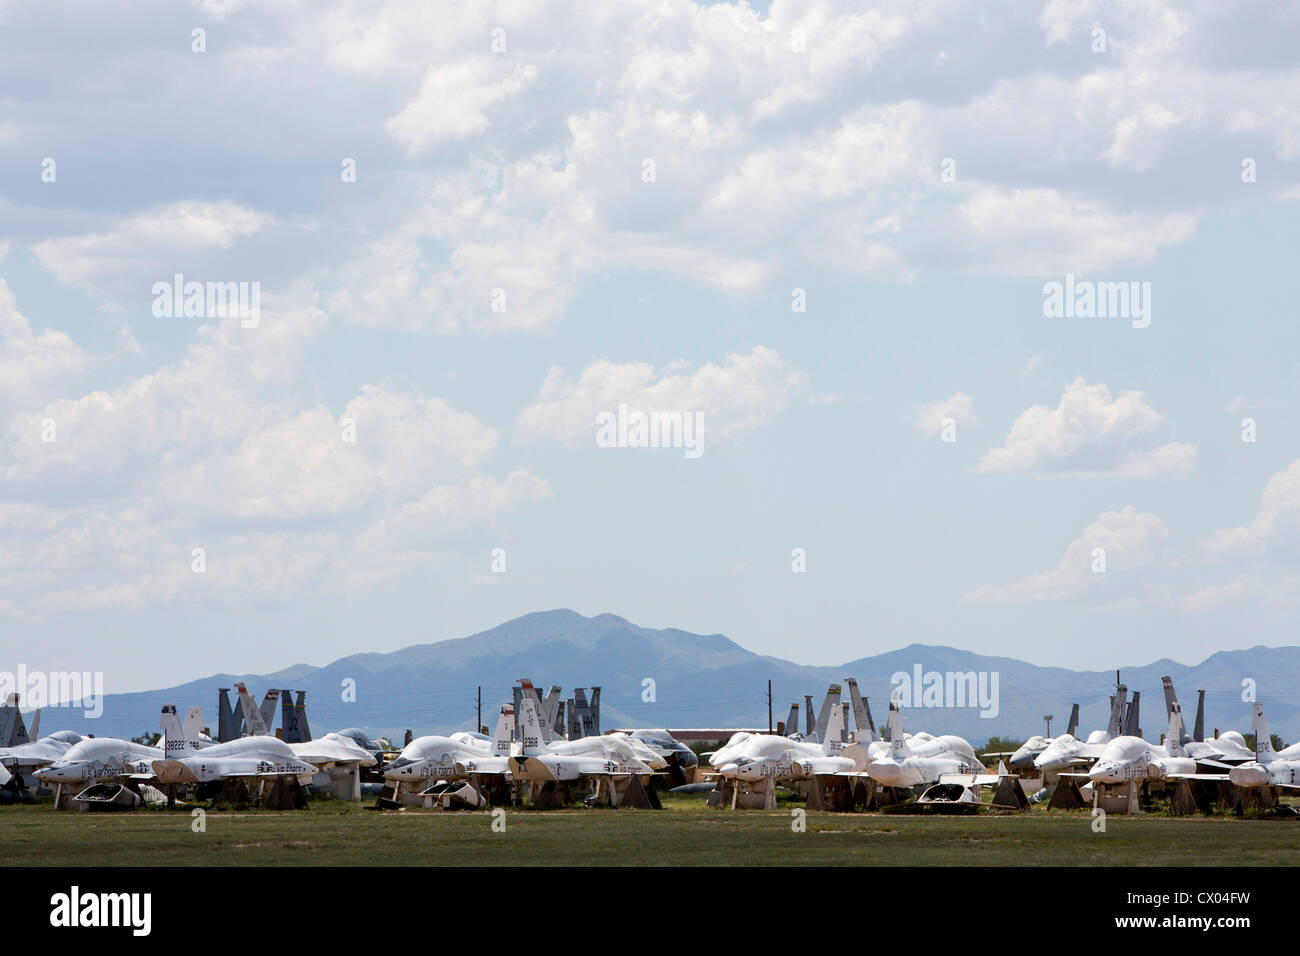 Military aircraft in storage at the 309th Aerospace Maintenance and Regeneration Group at Davis-Monthan Air Force - Stock Image